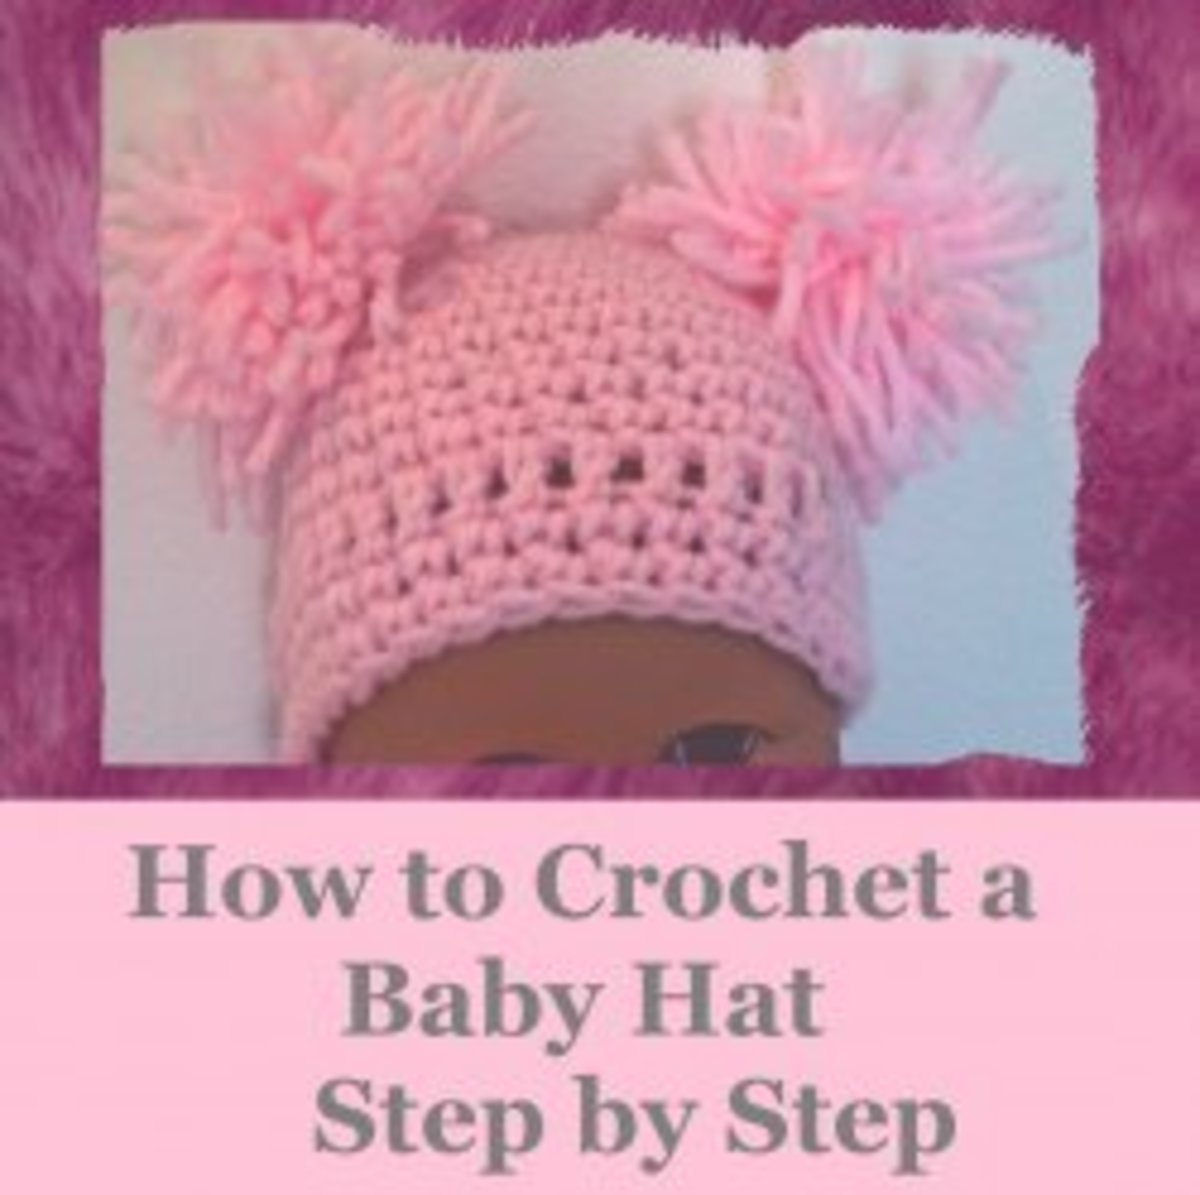 Crochet Stitches For Beginners Step By Step : How to Crochet a Baby Hat Ideal for Beginners (With Step-by-Step ...